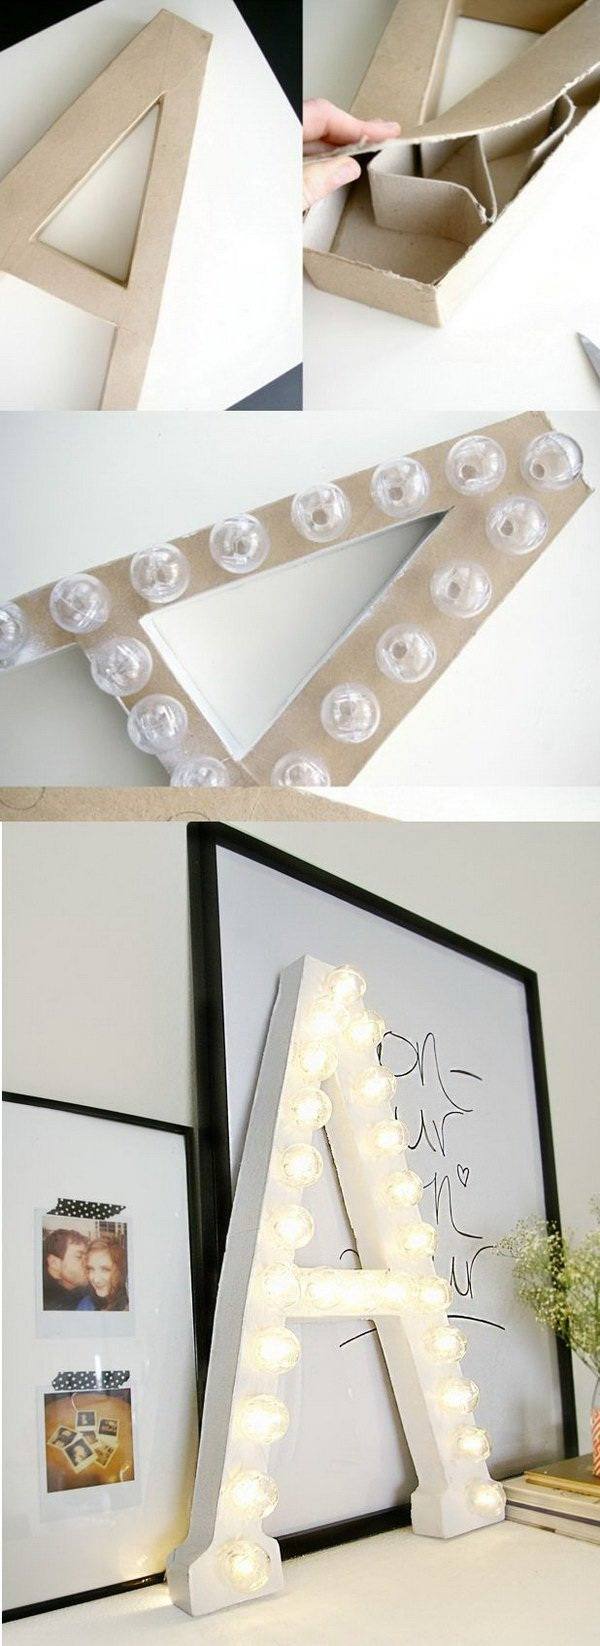 DIY Marquee Letters From Cardboard Another Stylish Project For Teen Girls Room Decor